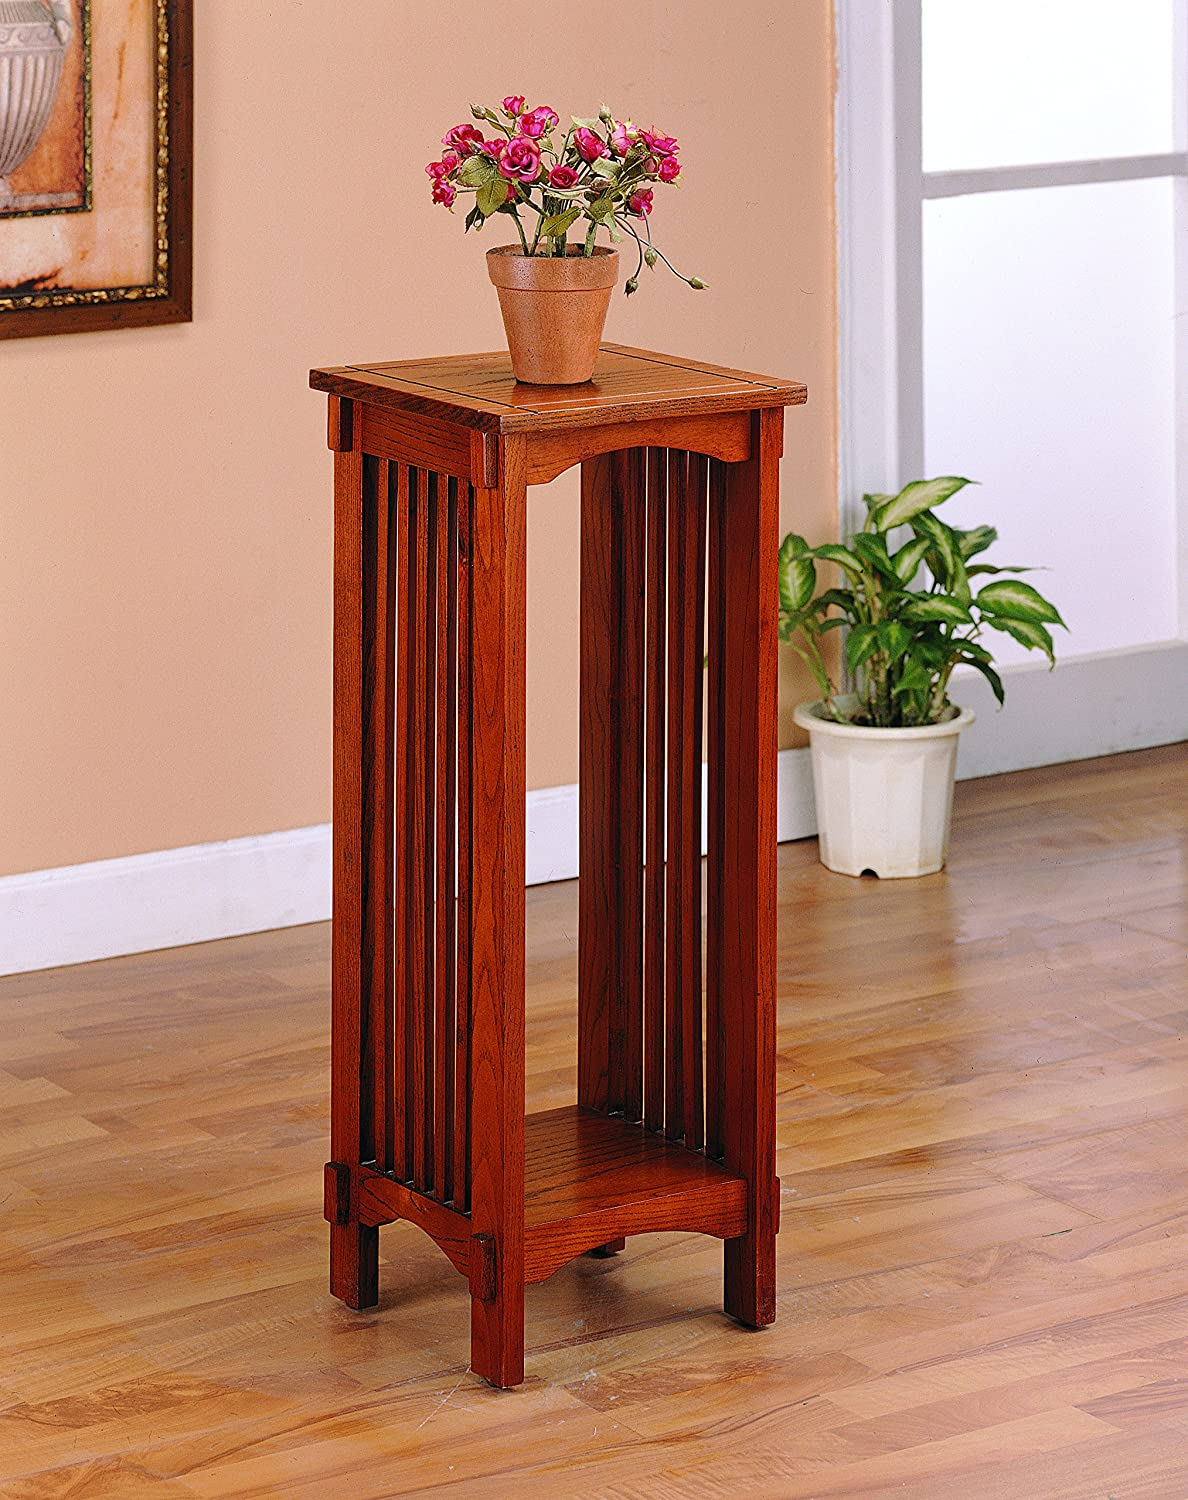 Coaster Home Furnishings Kittitas Plant Stand